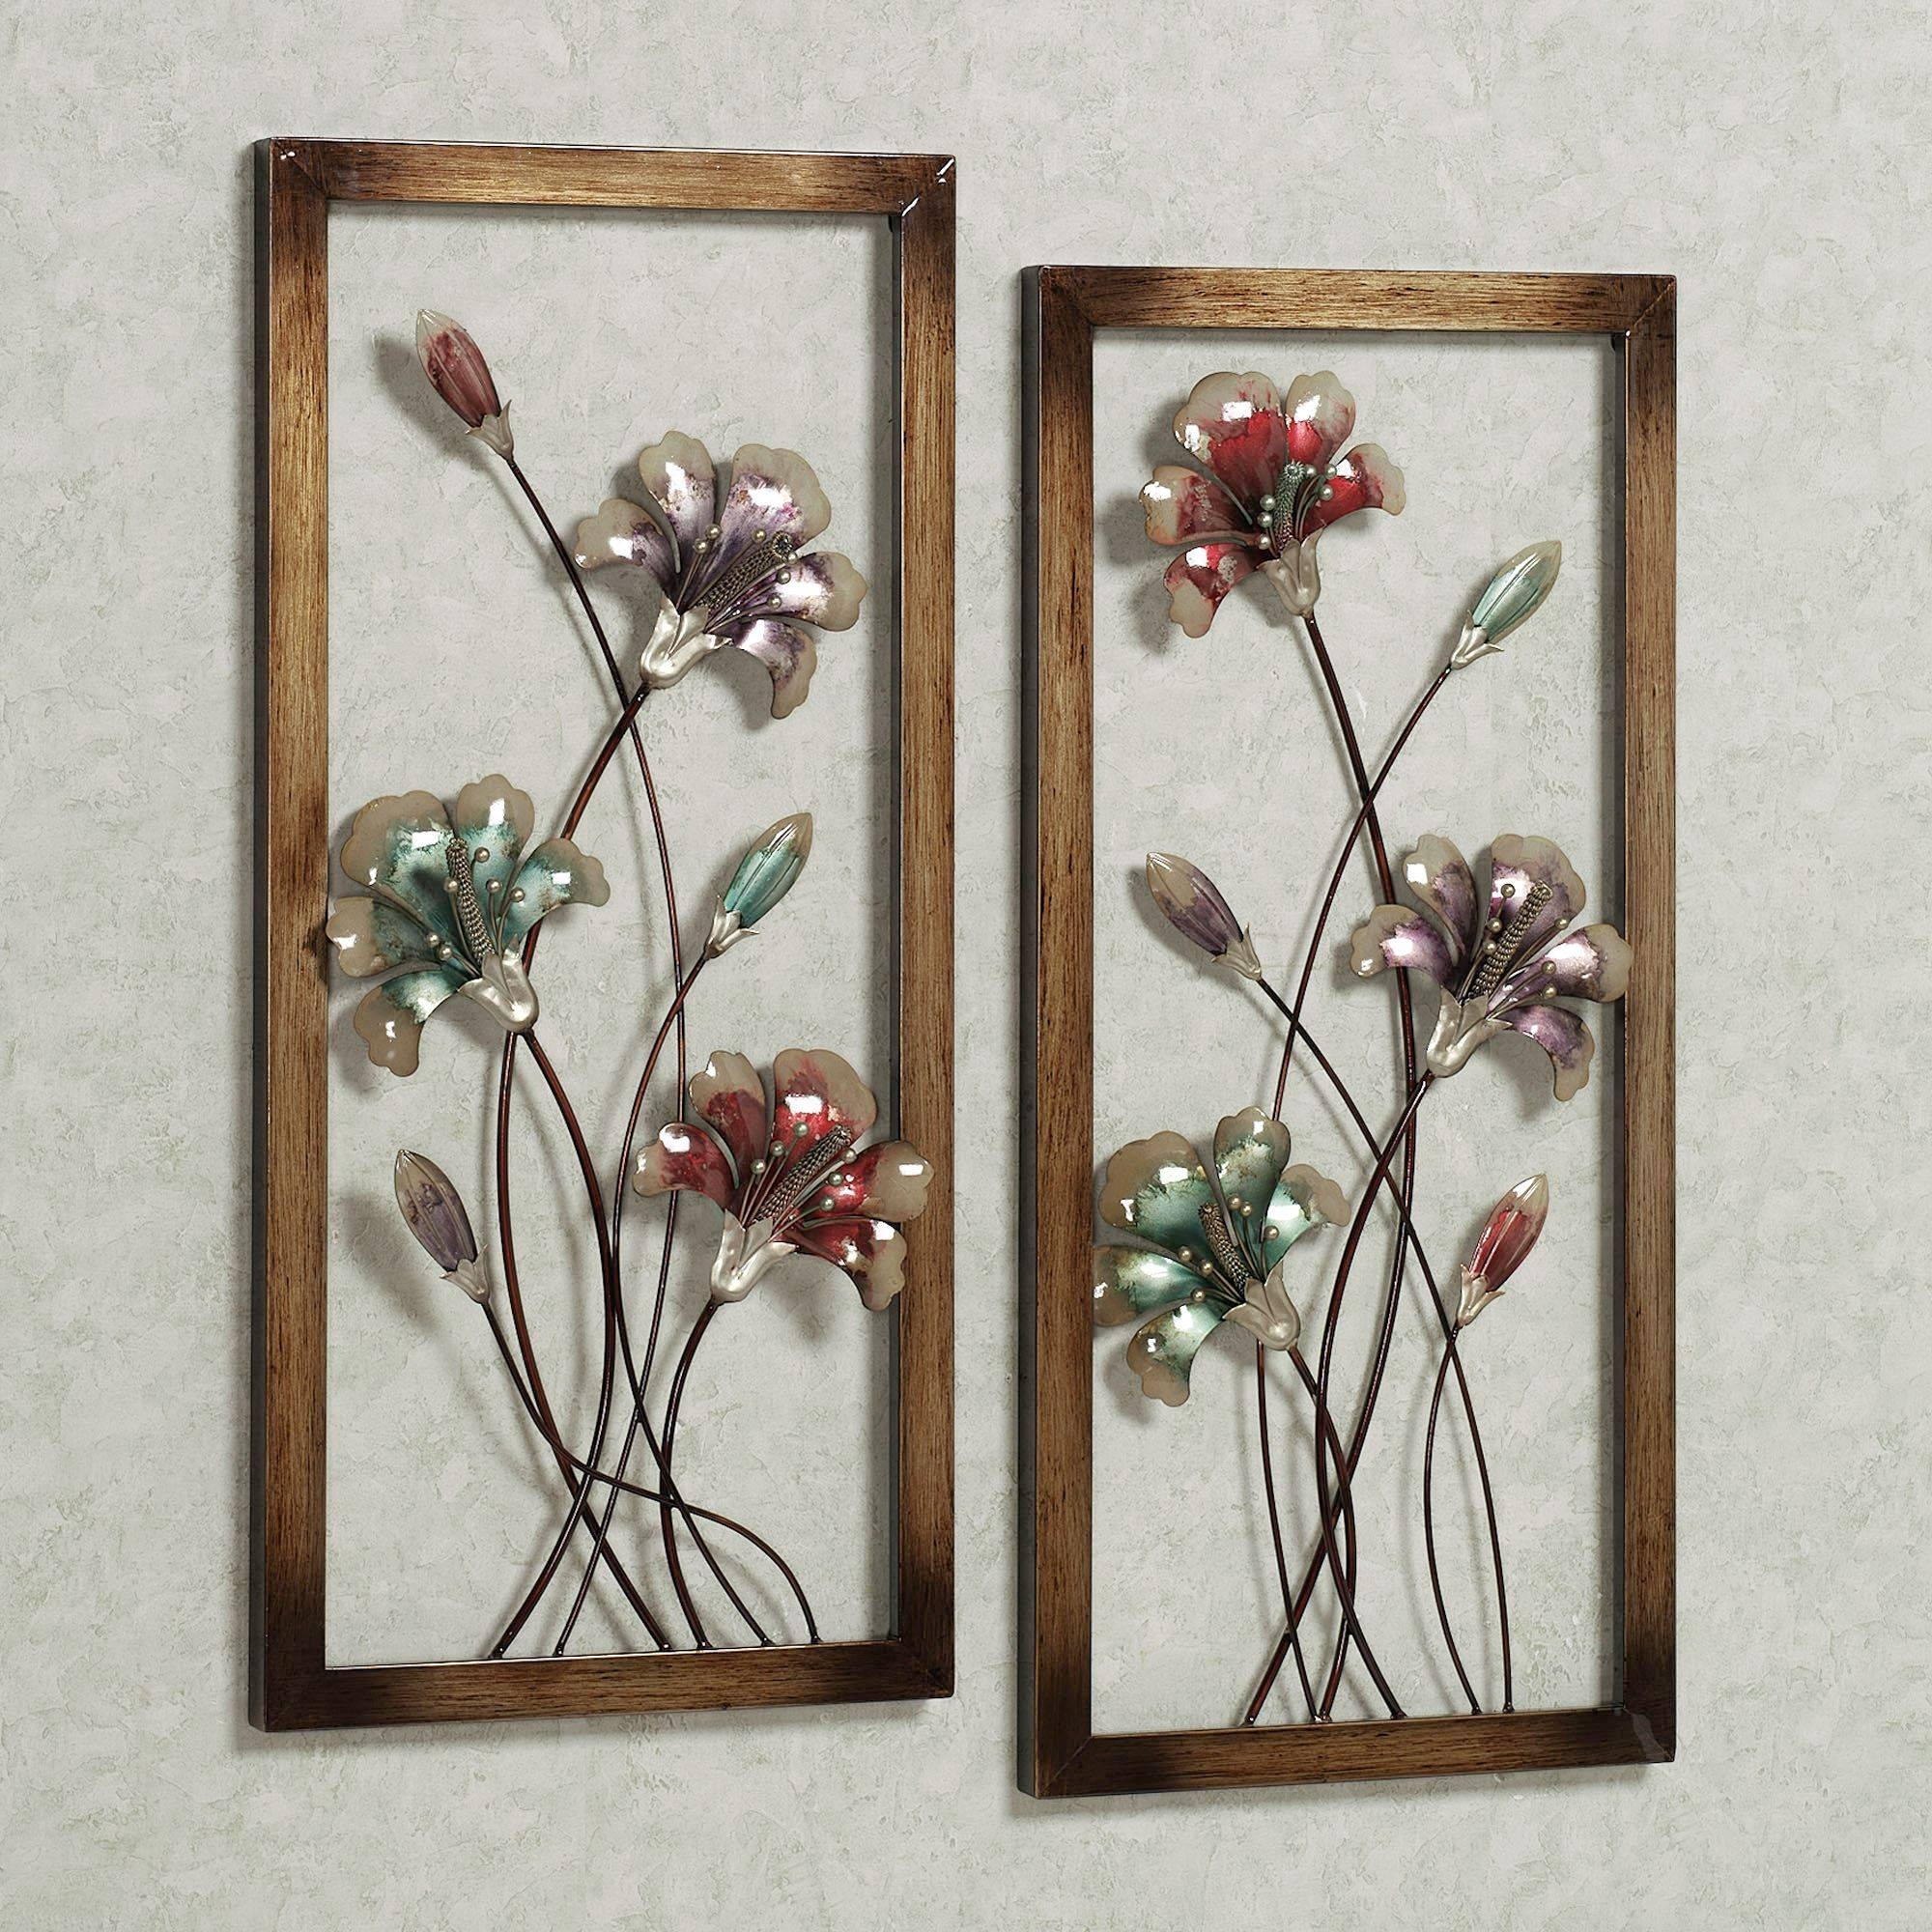 Garden Whispers Floral Metal Wall Art Panel Set For Most Up To Date Metal Wall Art For Gardens (View 11 of 20)